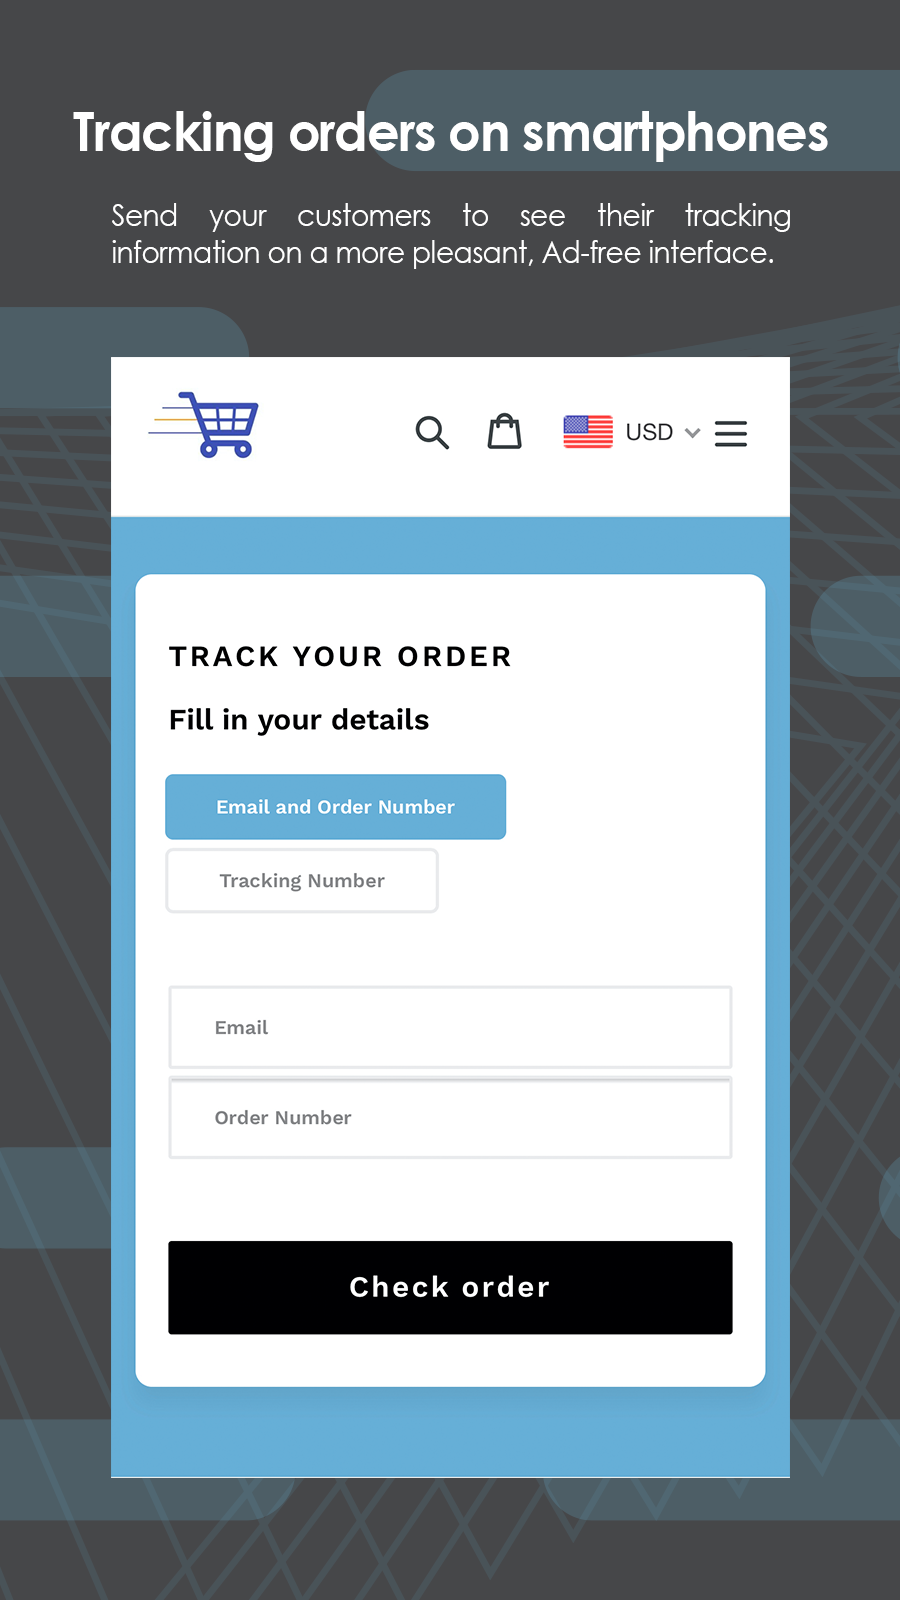 Tracking orders on smartphones